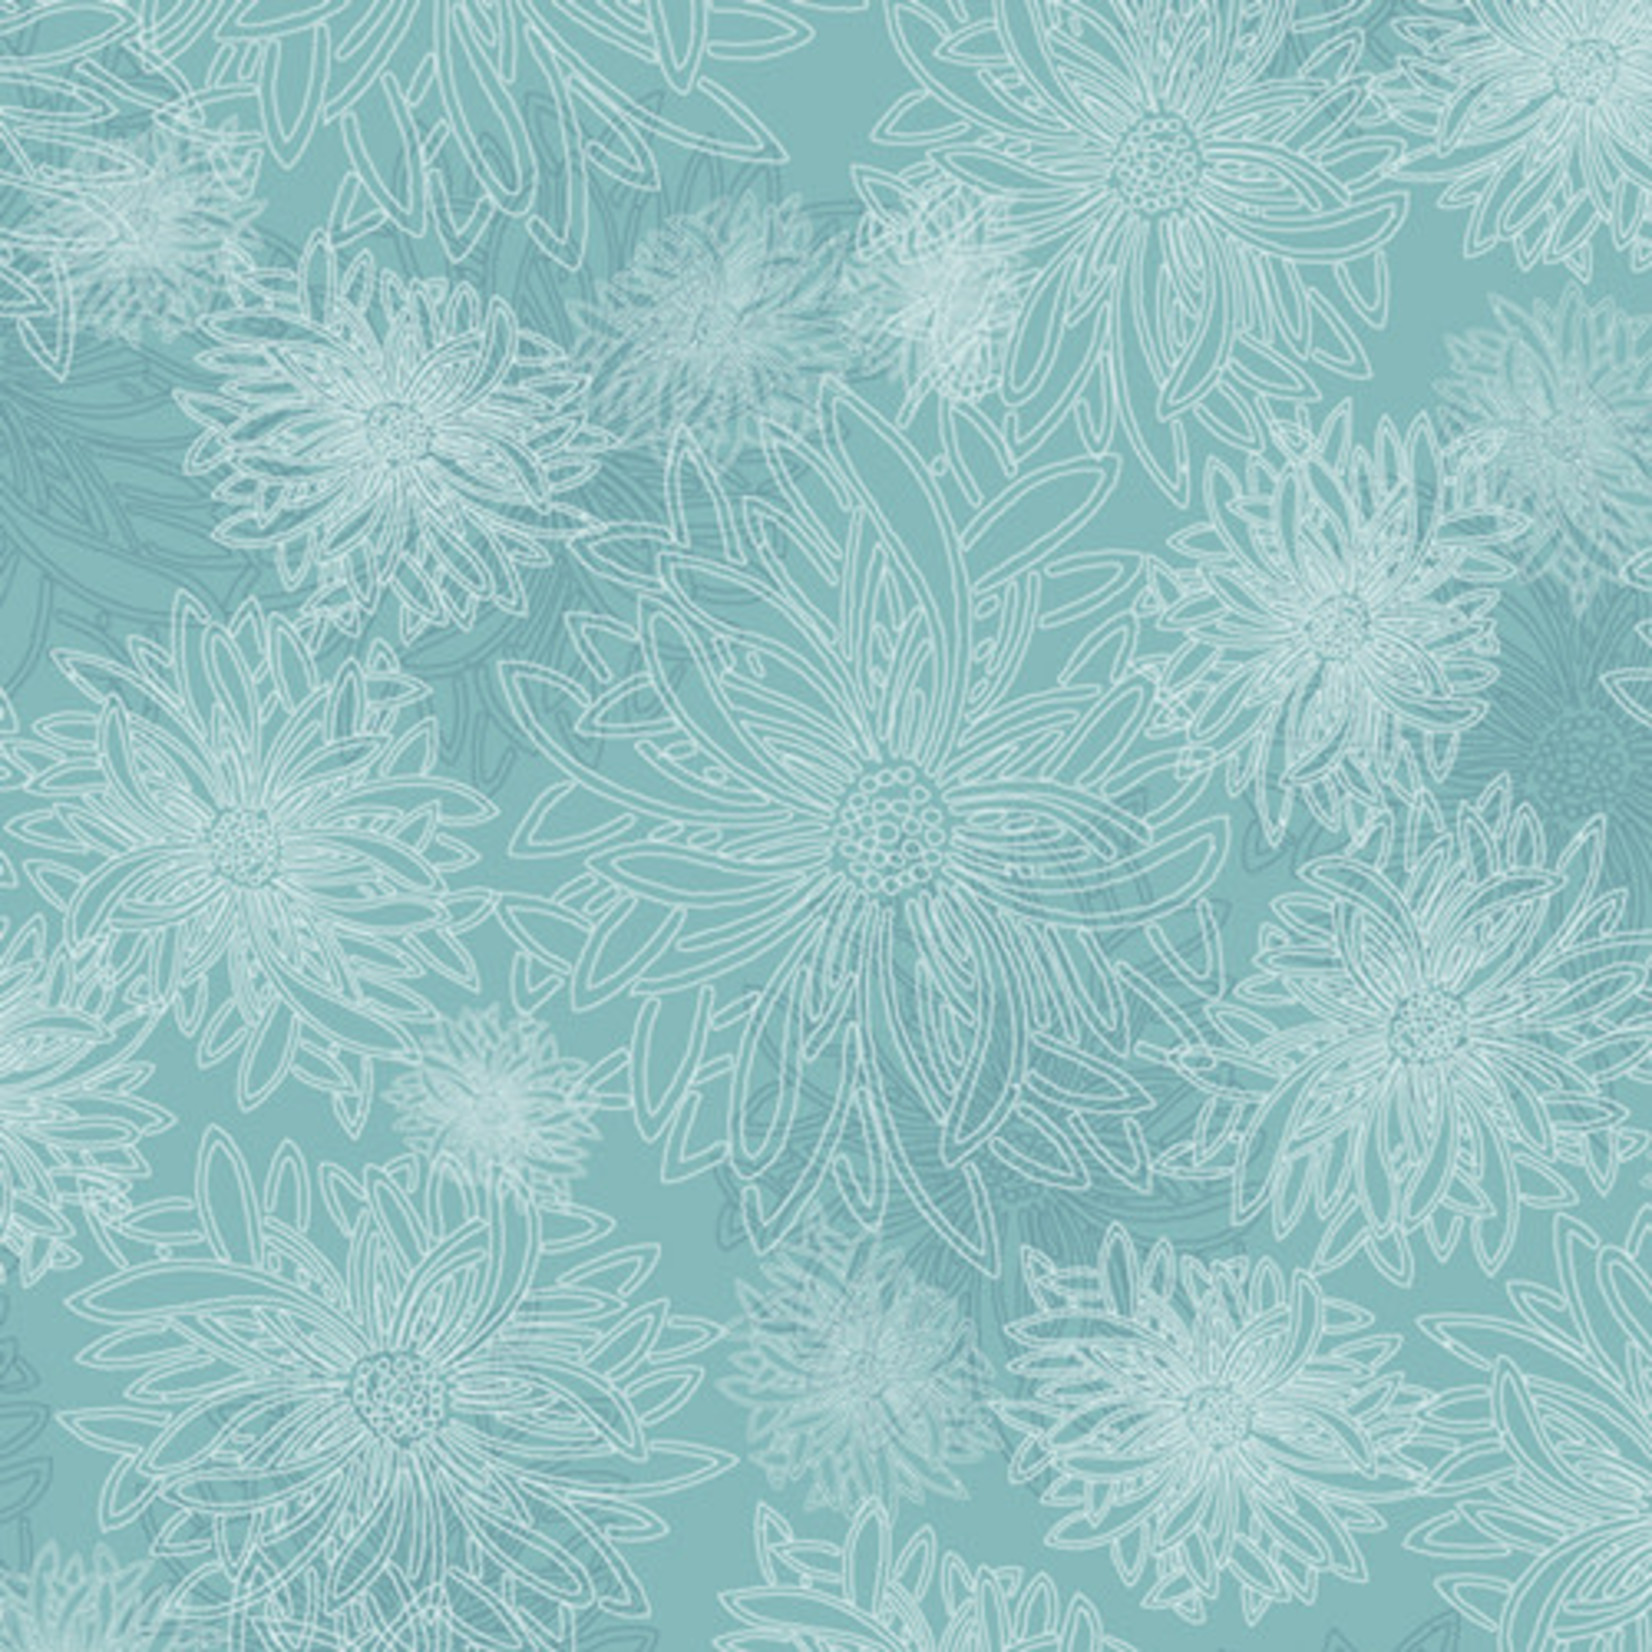 ART GALLERY FLORAL ELEMENTS, AQUA HAZE 508 $0.20/cm or $20/m